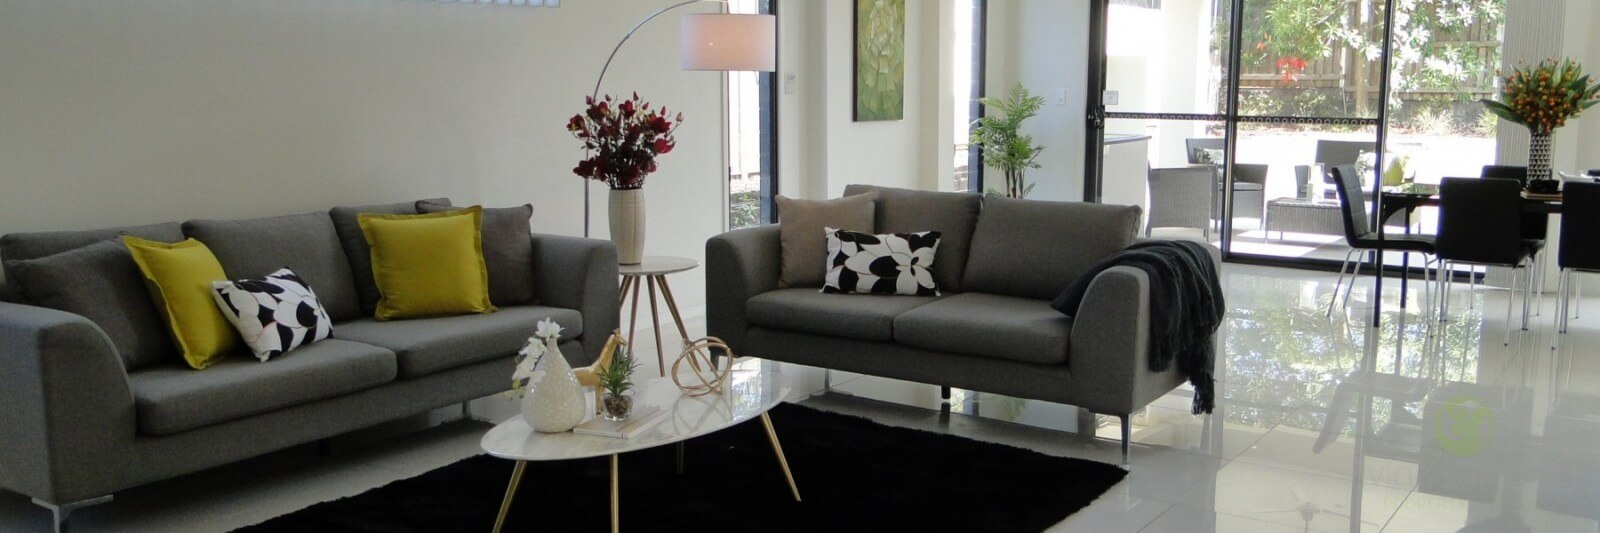 Living Synergy Property Styling Brisbane 39 S Home Staging Specialists